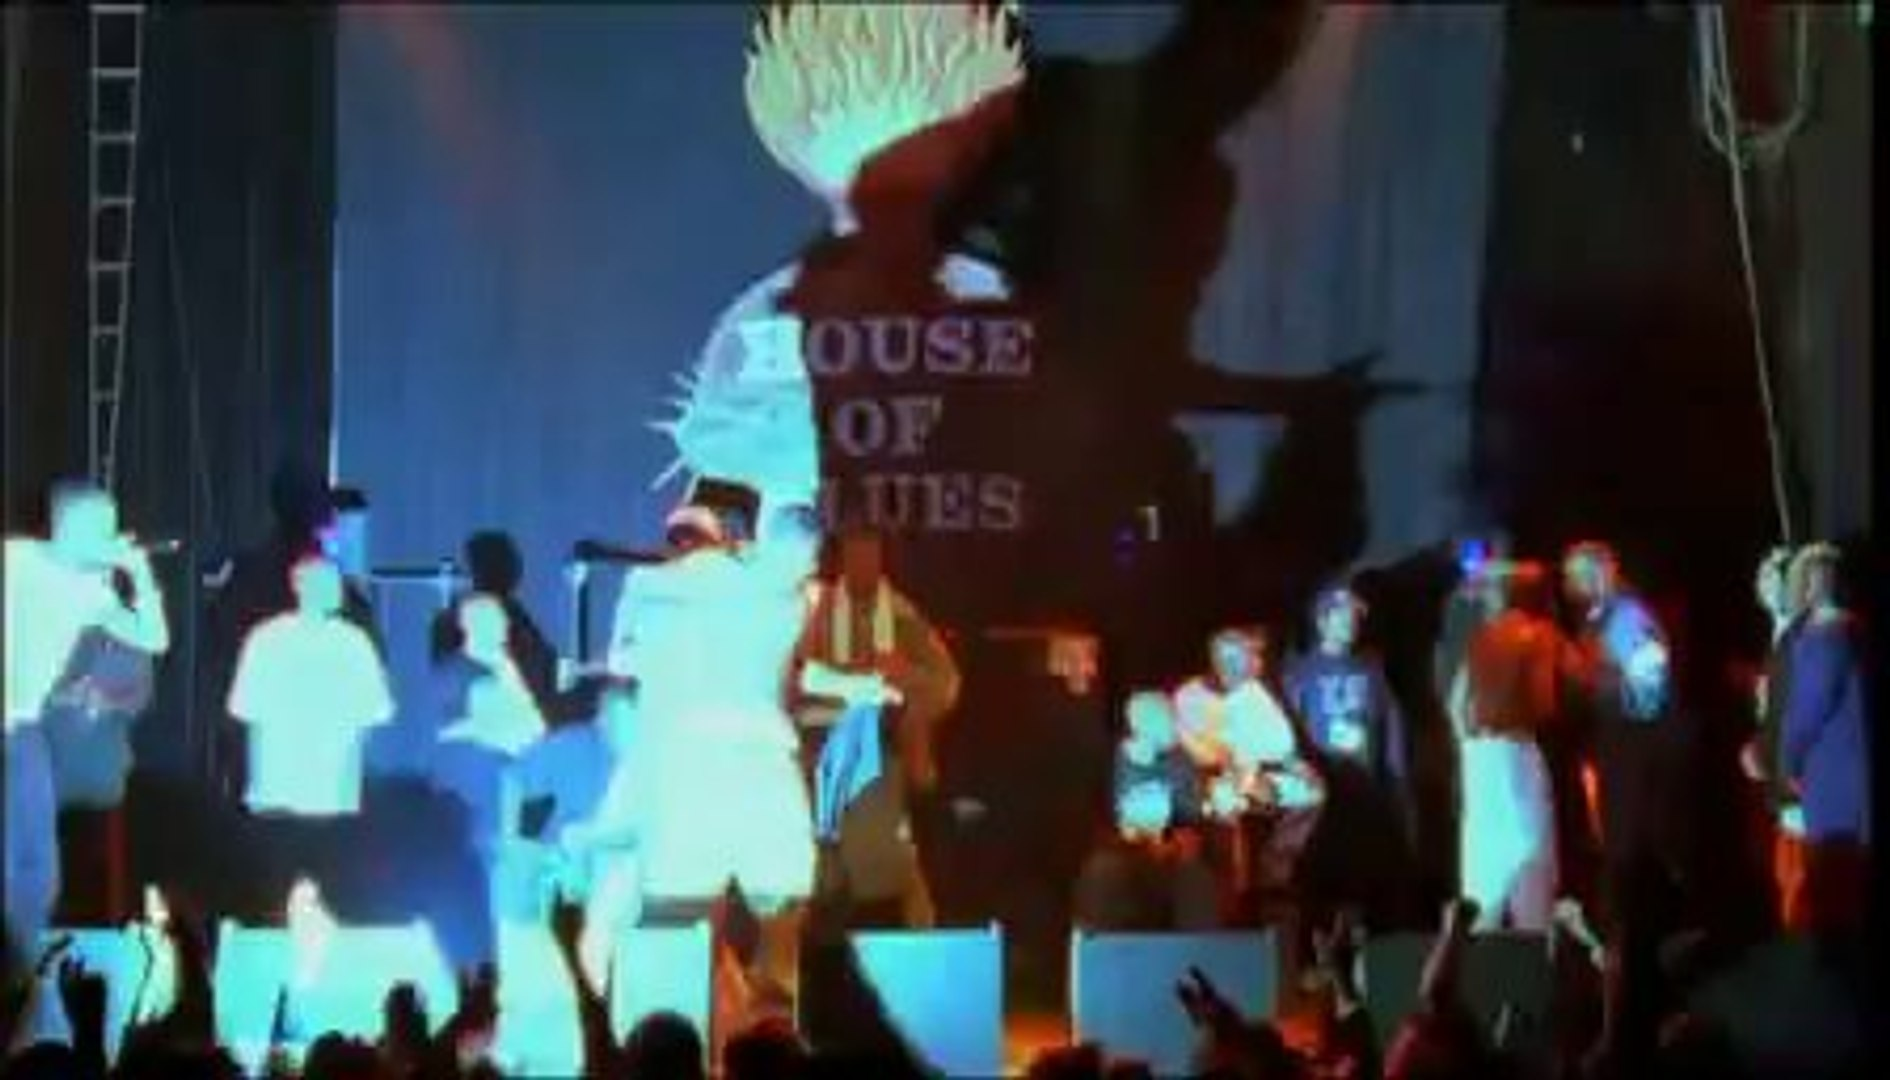 Tupac - How Do You Want It (Live at the House of Blues)